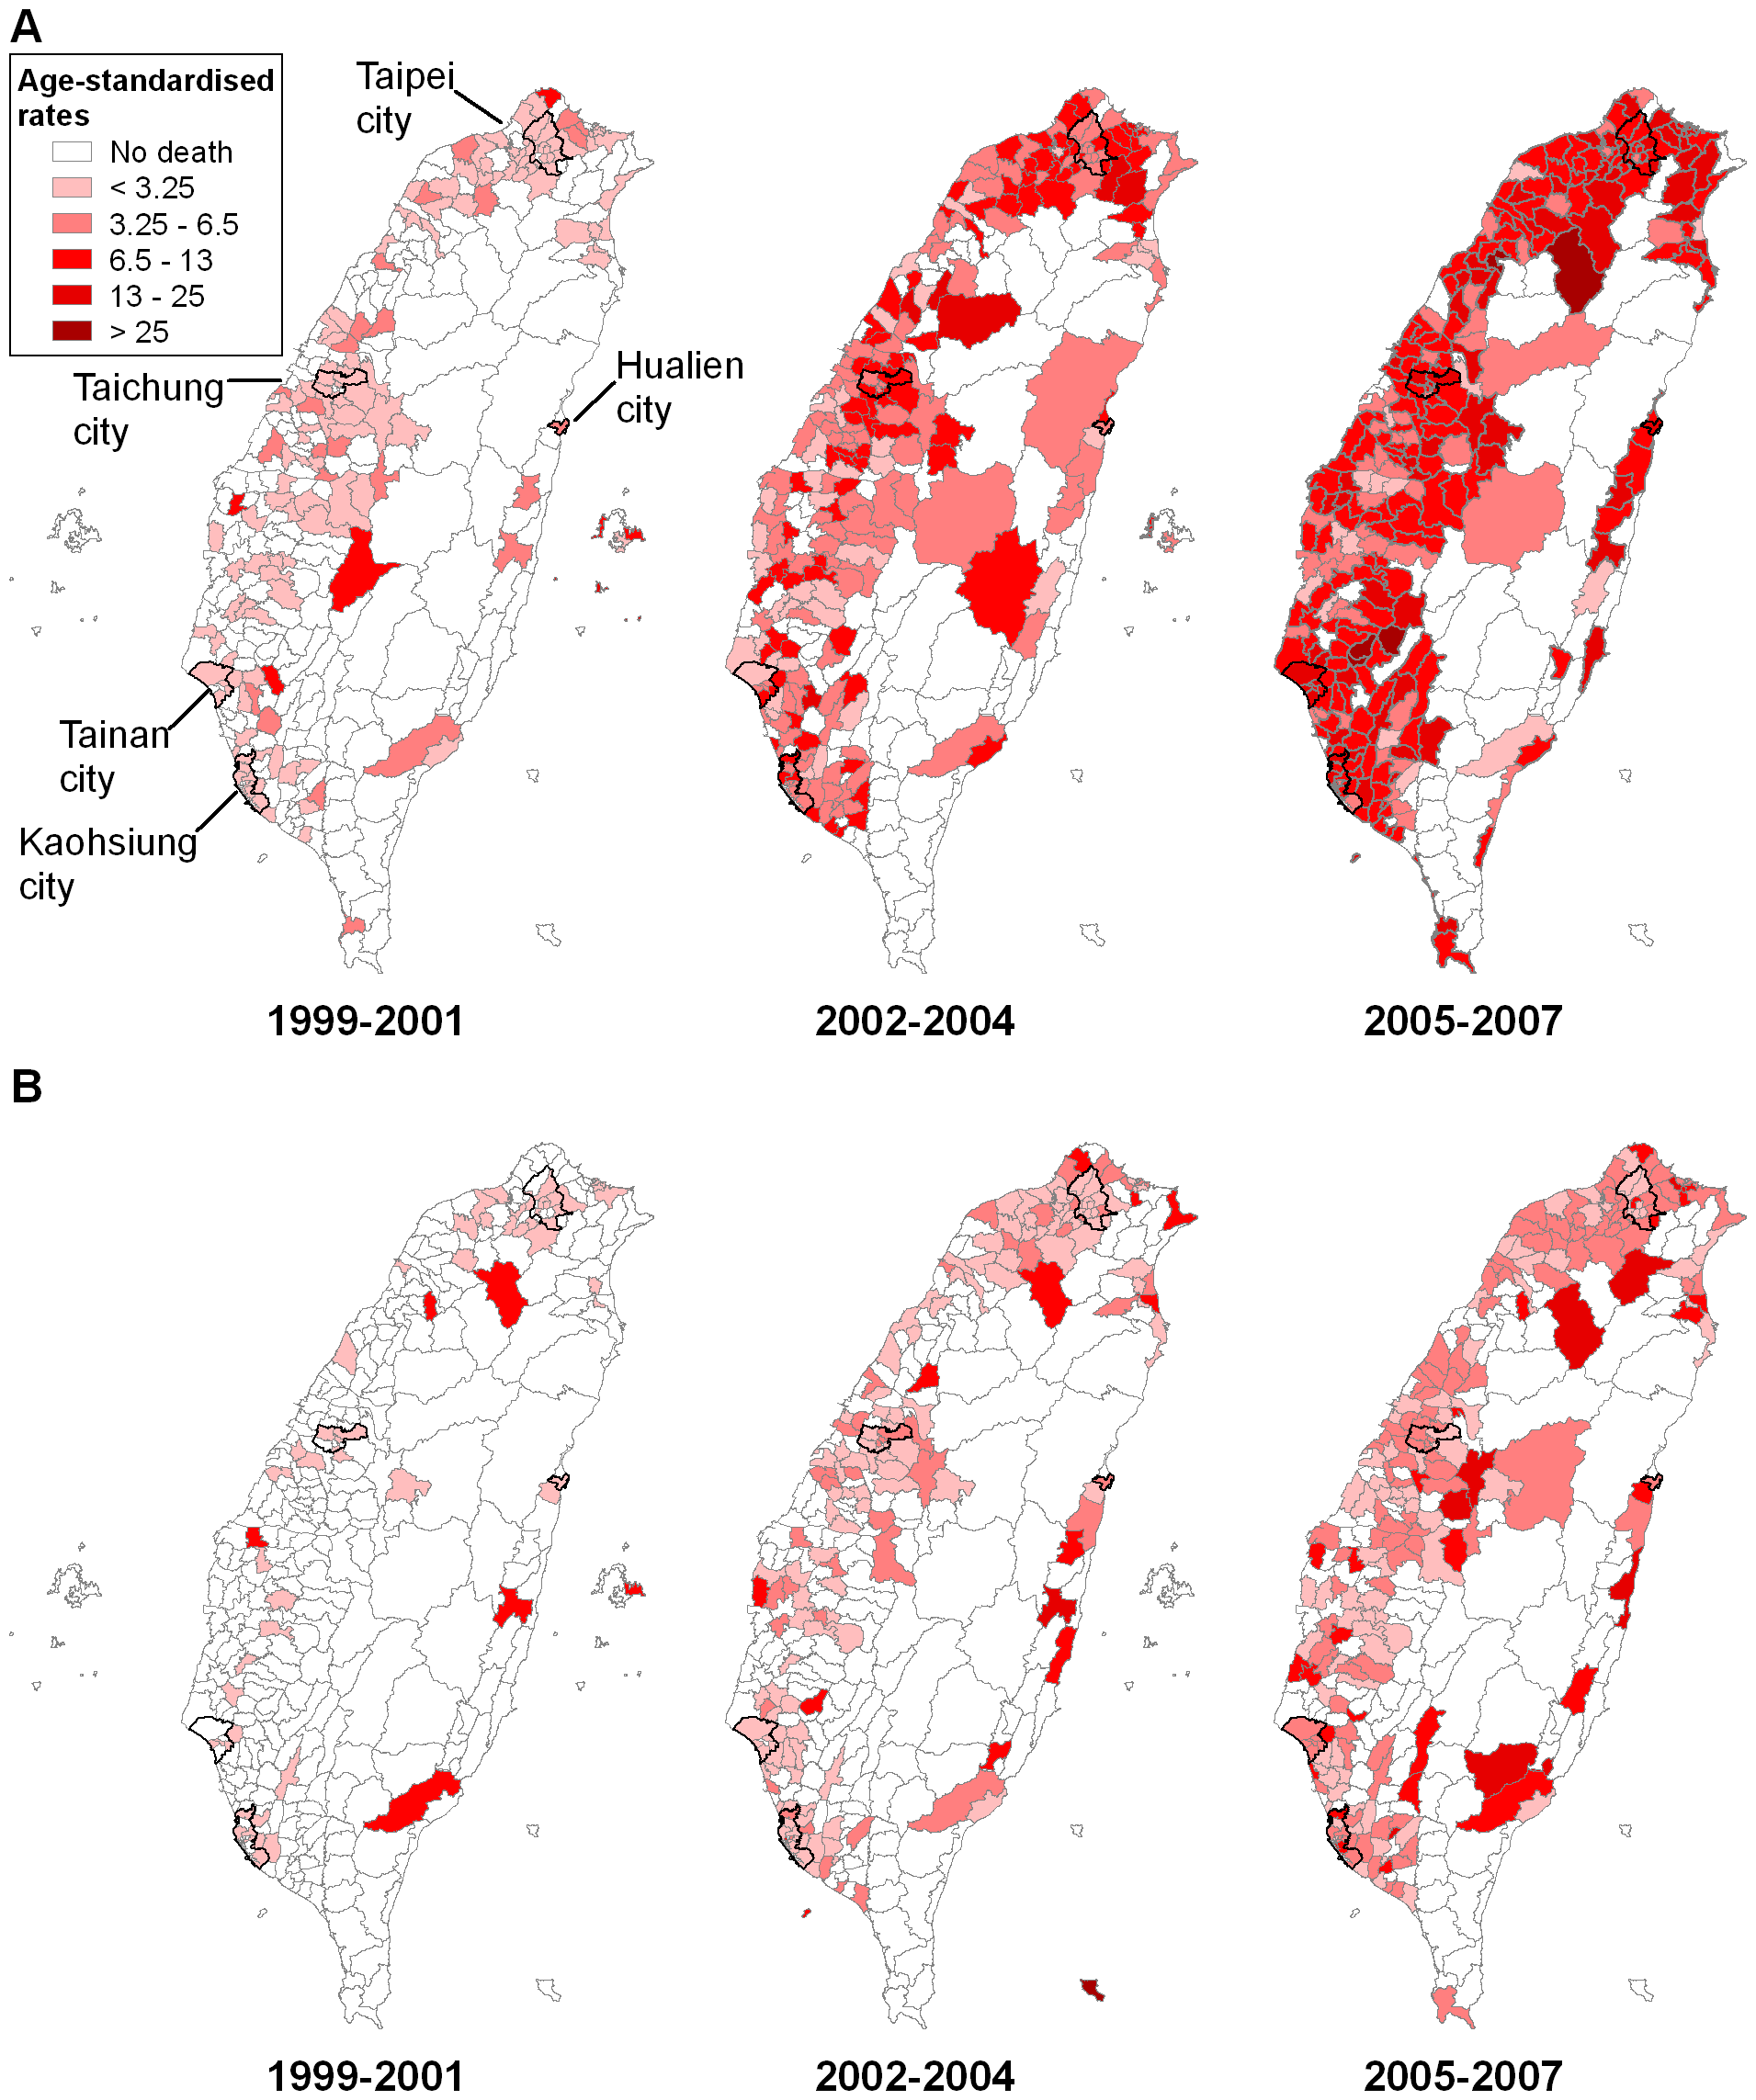 Maps of (unsmoothed) age-standardised rates of suicide (including registered suicide and undetermined death) by charcoal burning across 358 townships in Taiwan, 1999–2001, 2002–2004, and 2005–2007, with five major cities highlighted.